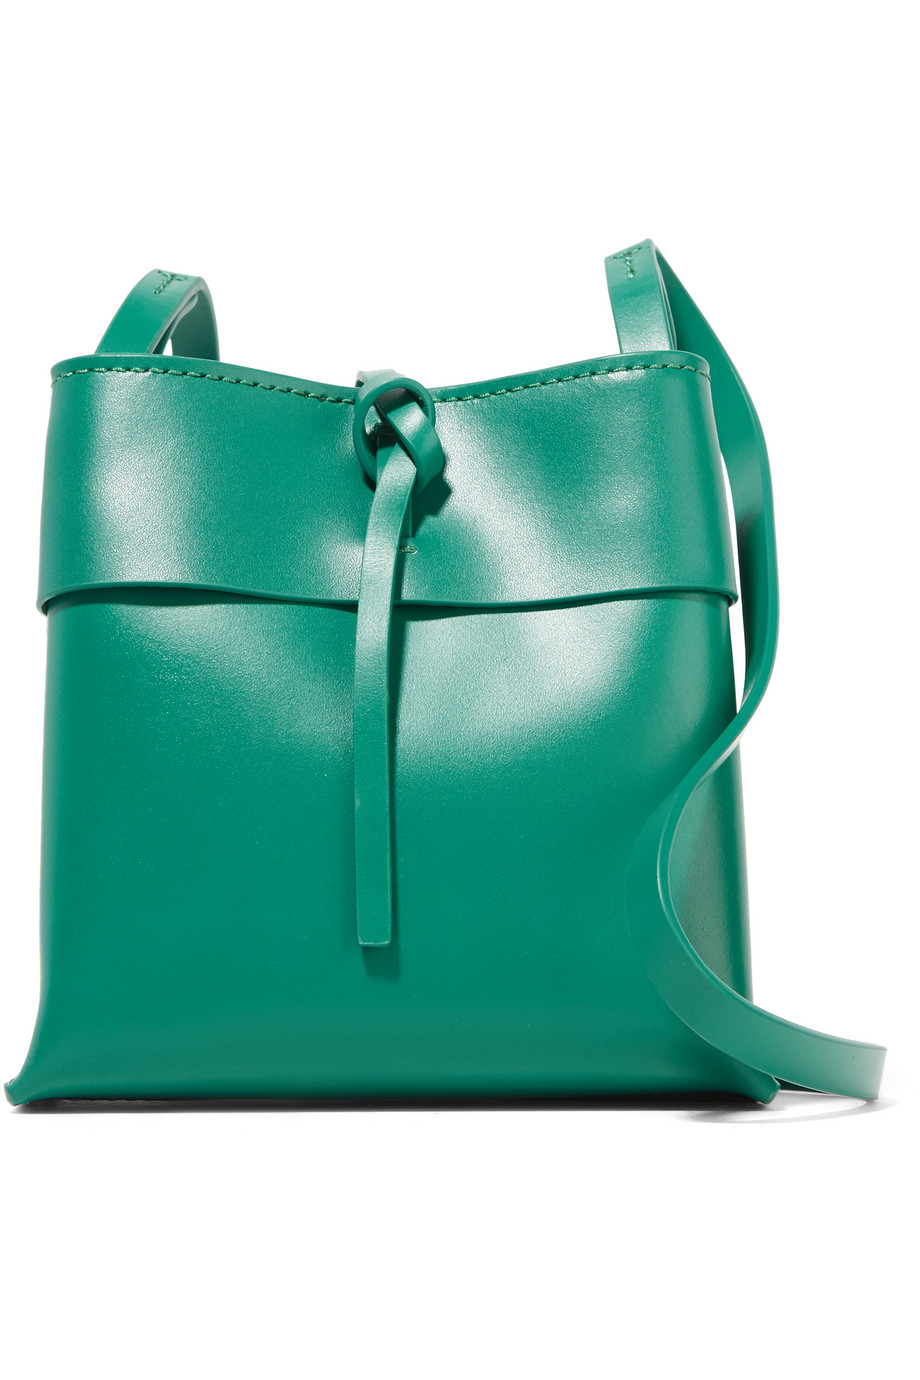 Nano Tie Leather Shoulder Bag, Jade, Women's